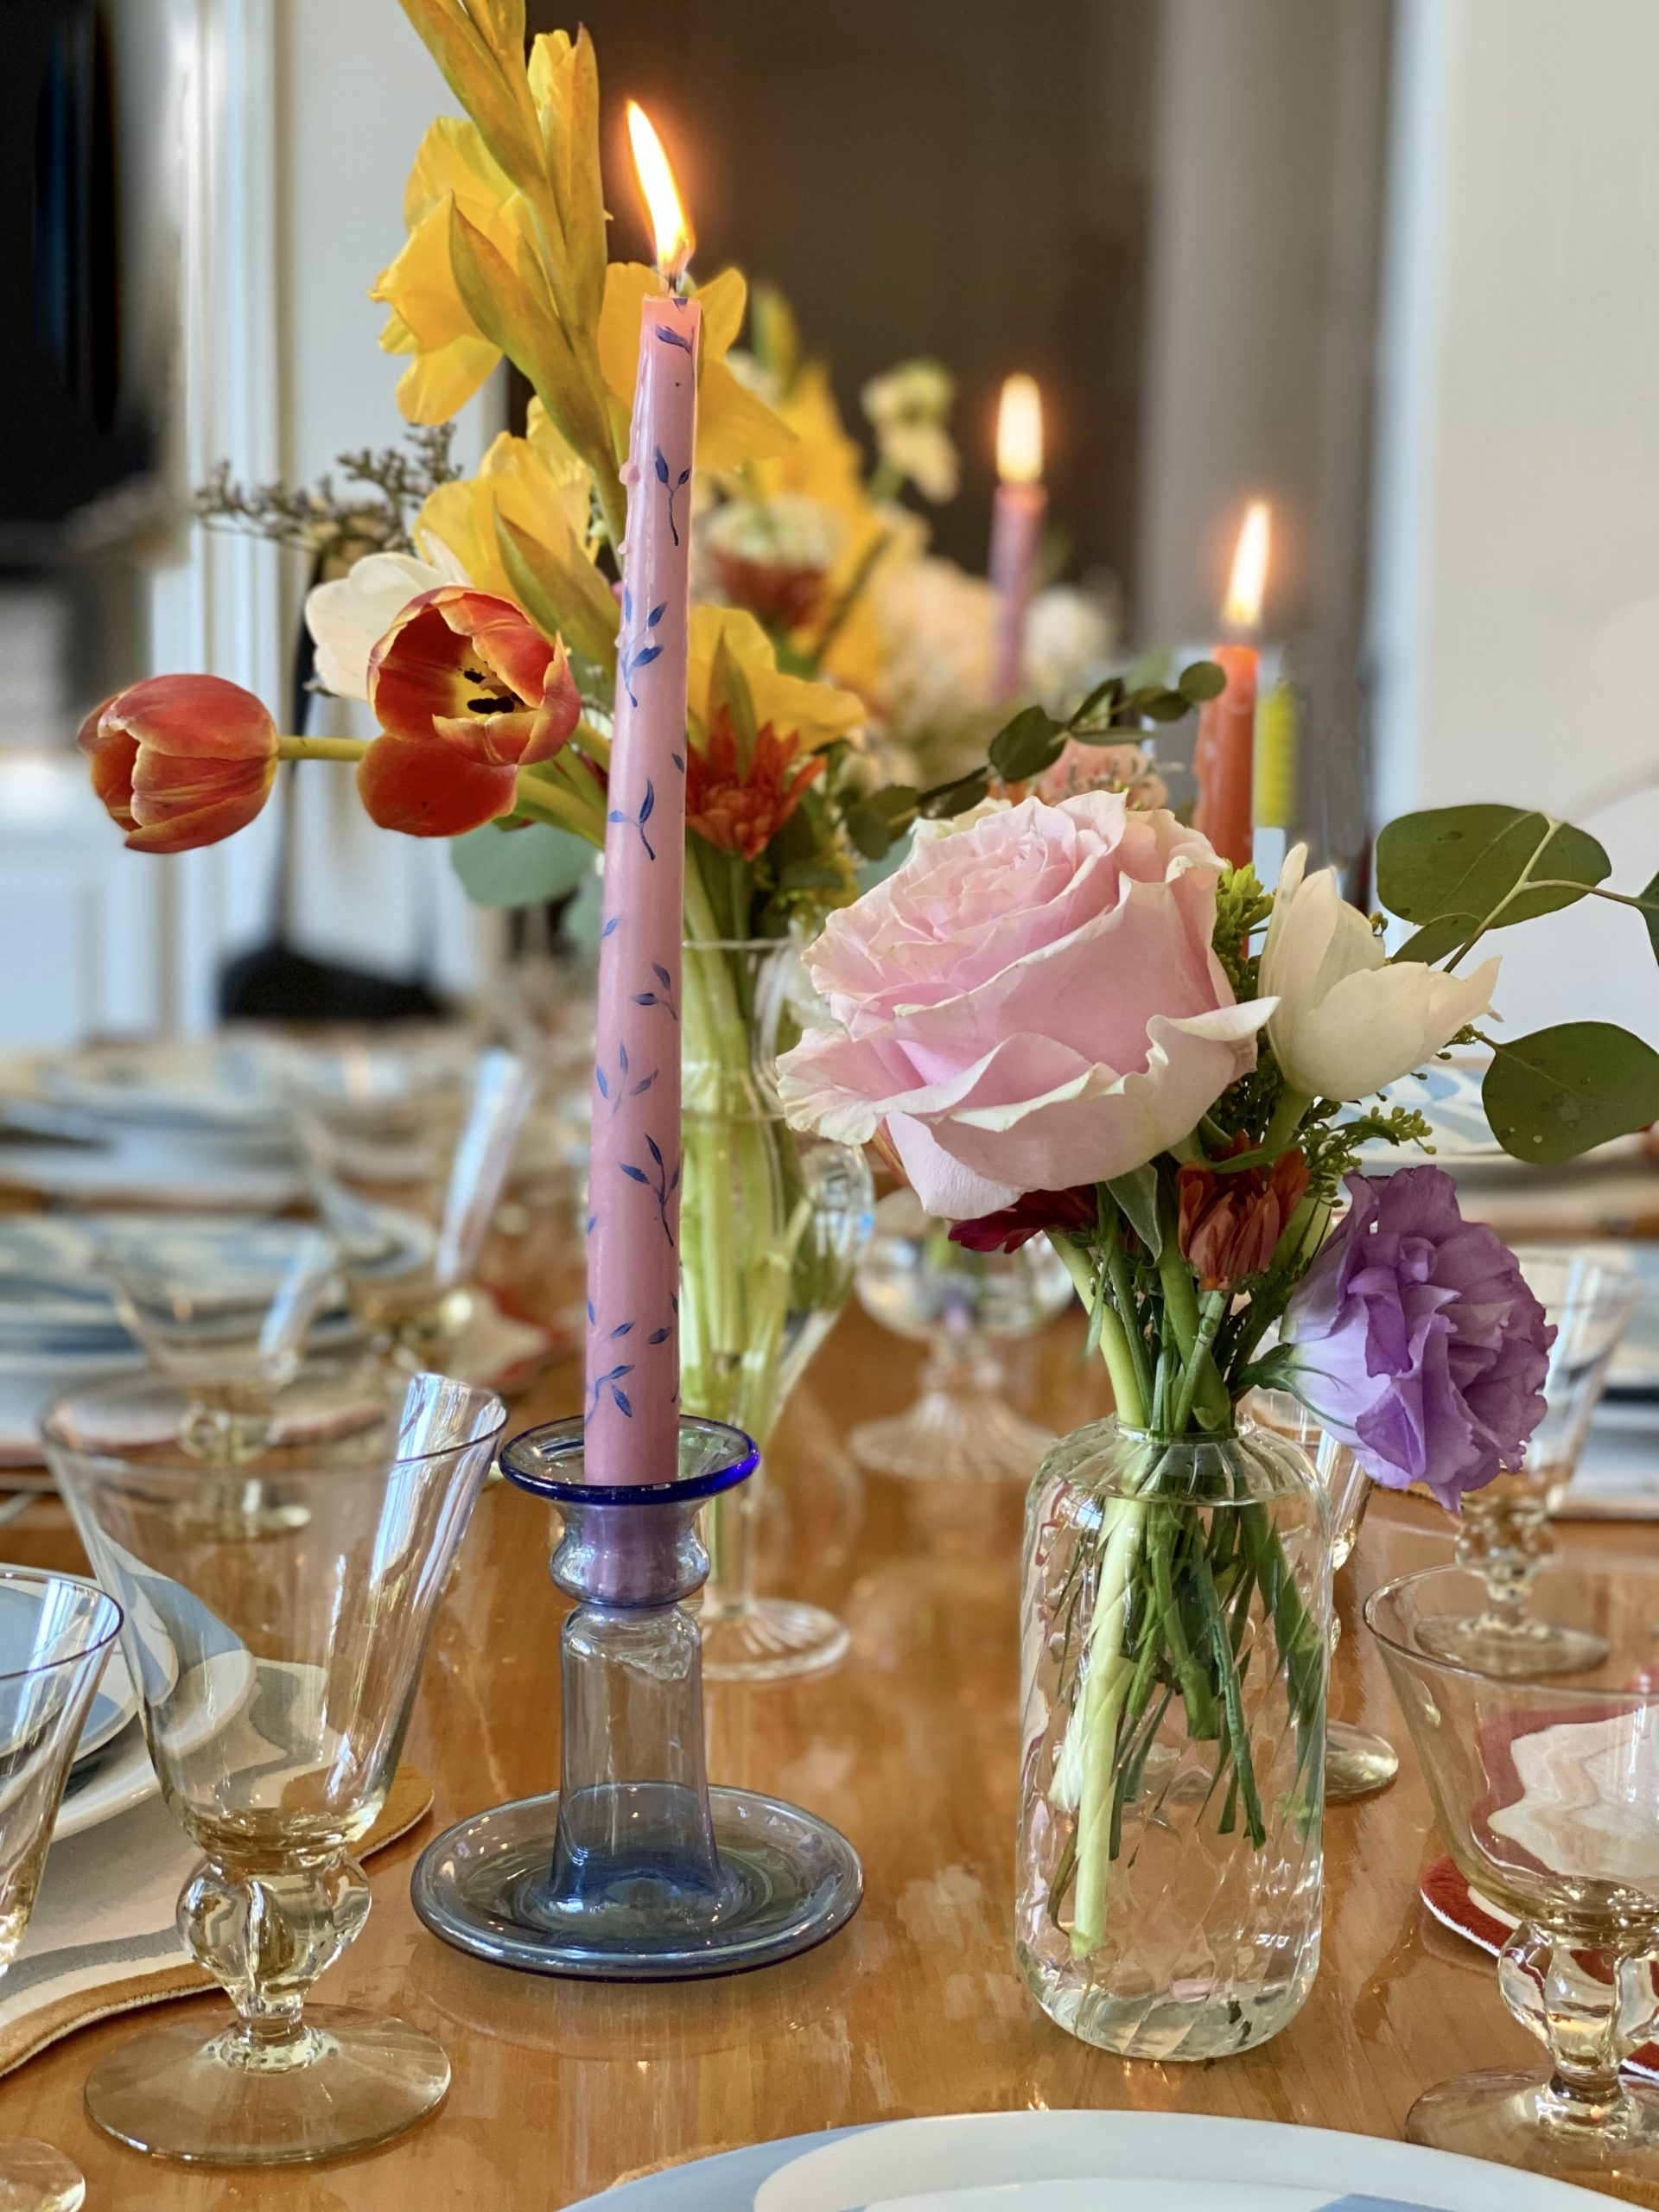 Tablescape by Kimberly Schlegel Whitman